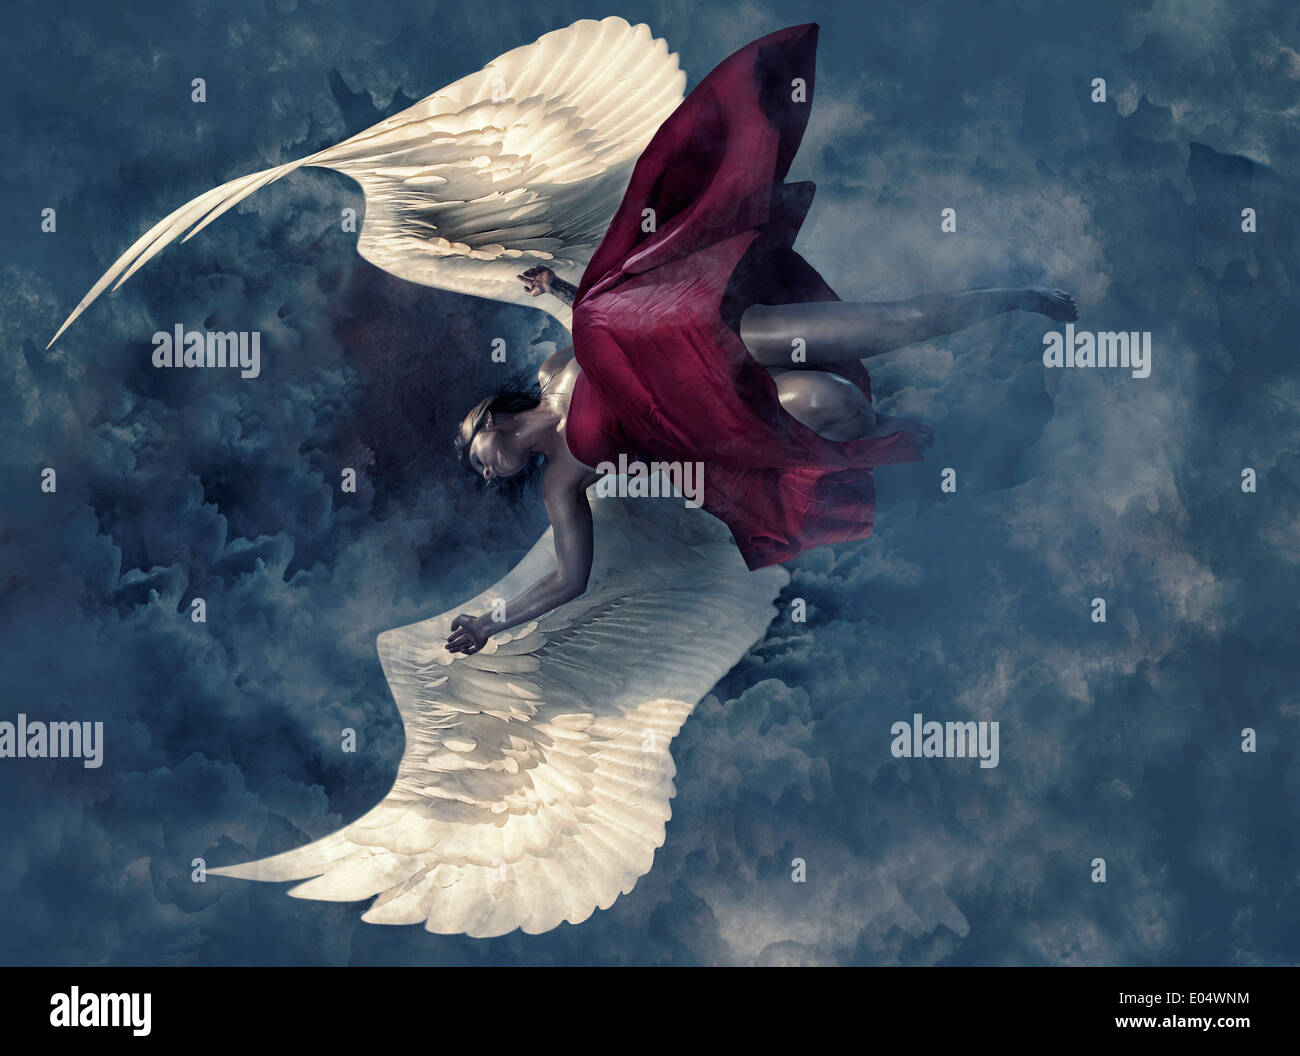 Woman with angel wings falling through the sky - Stock Image